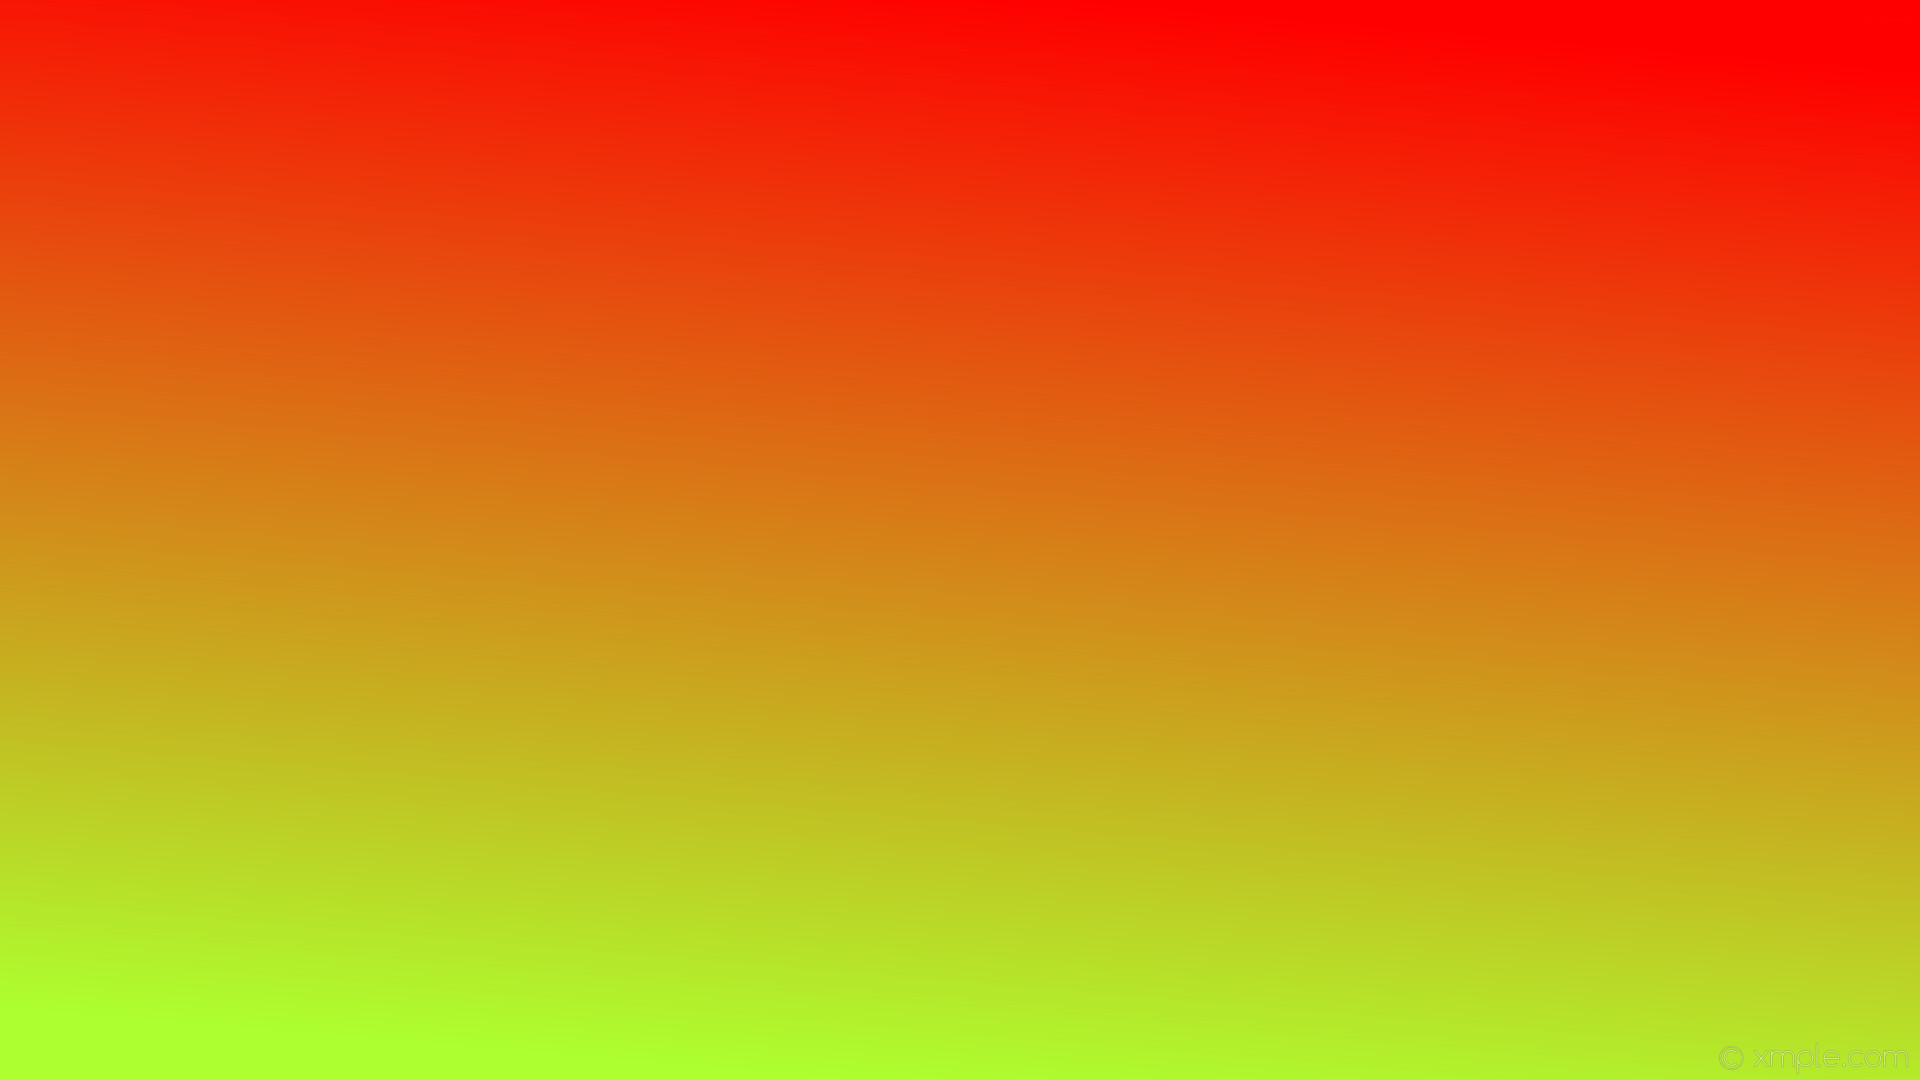 Yellow and Red Wallpaper (59+ images)